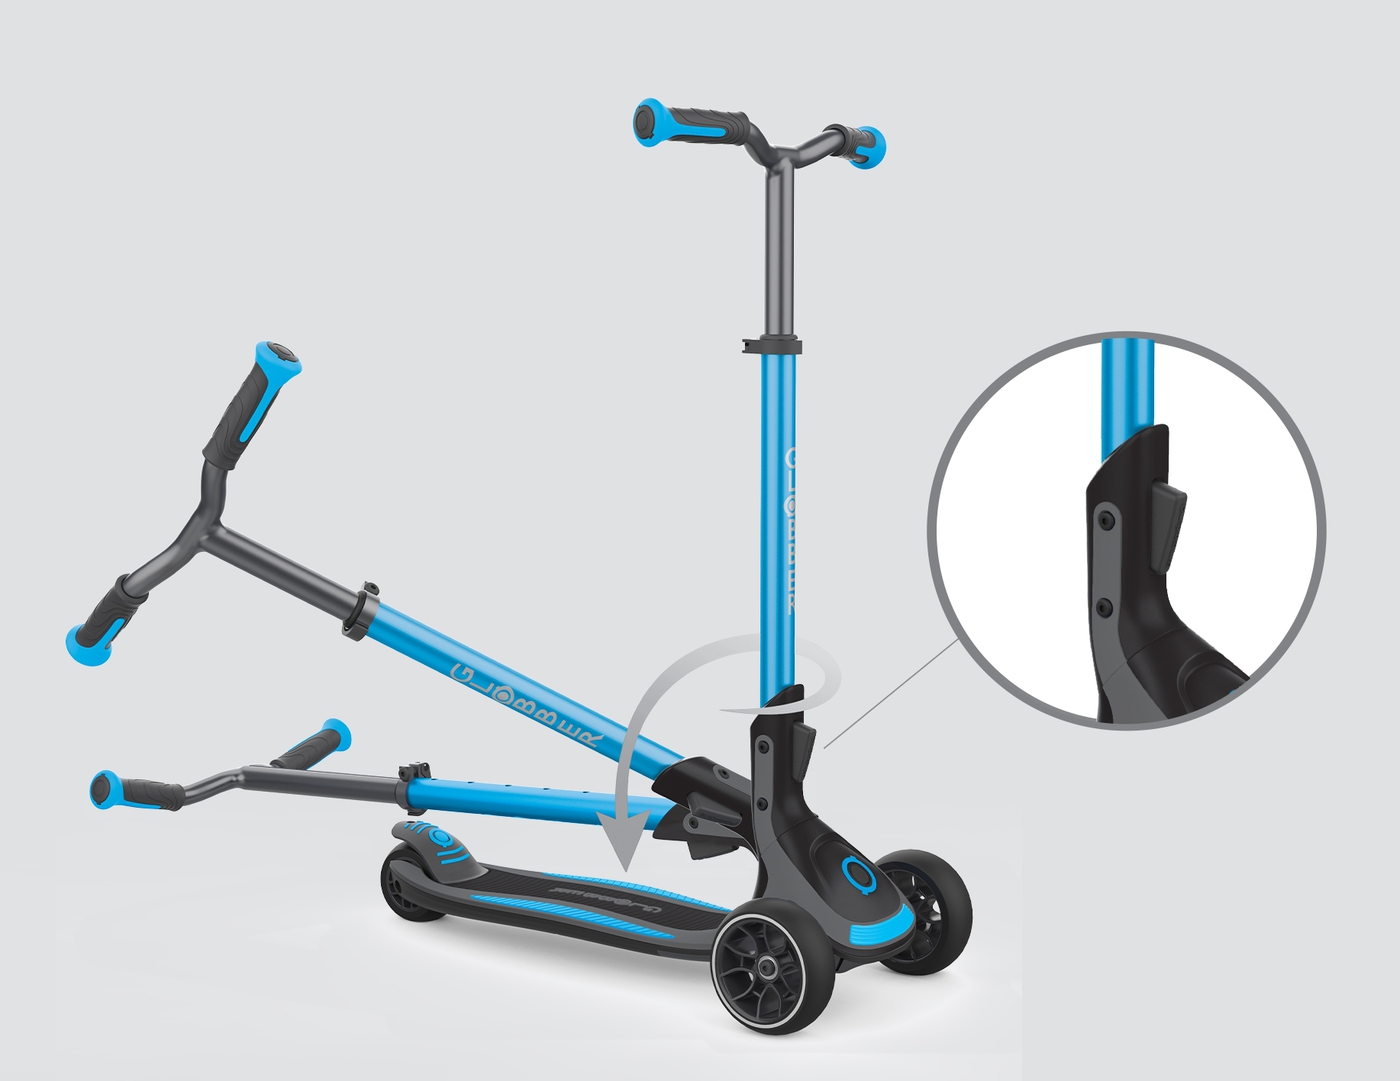 3-wheel foldable scooter for kids, teens & adults